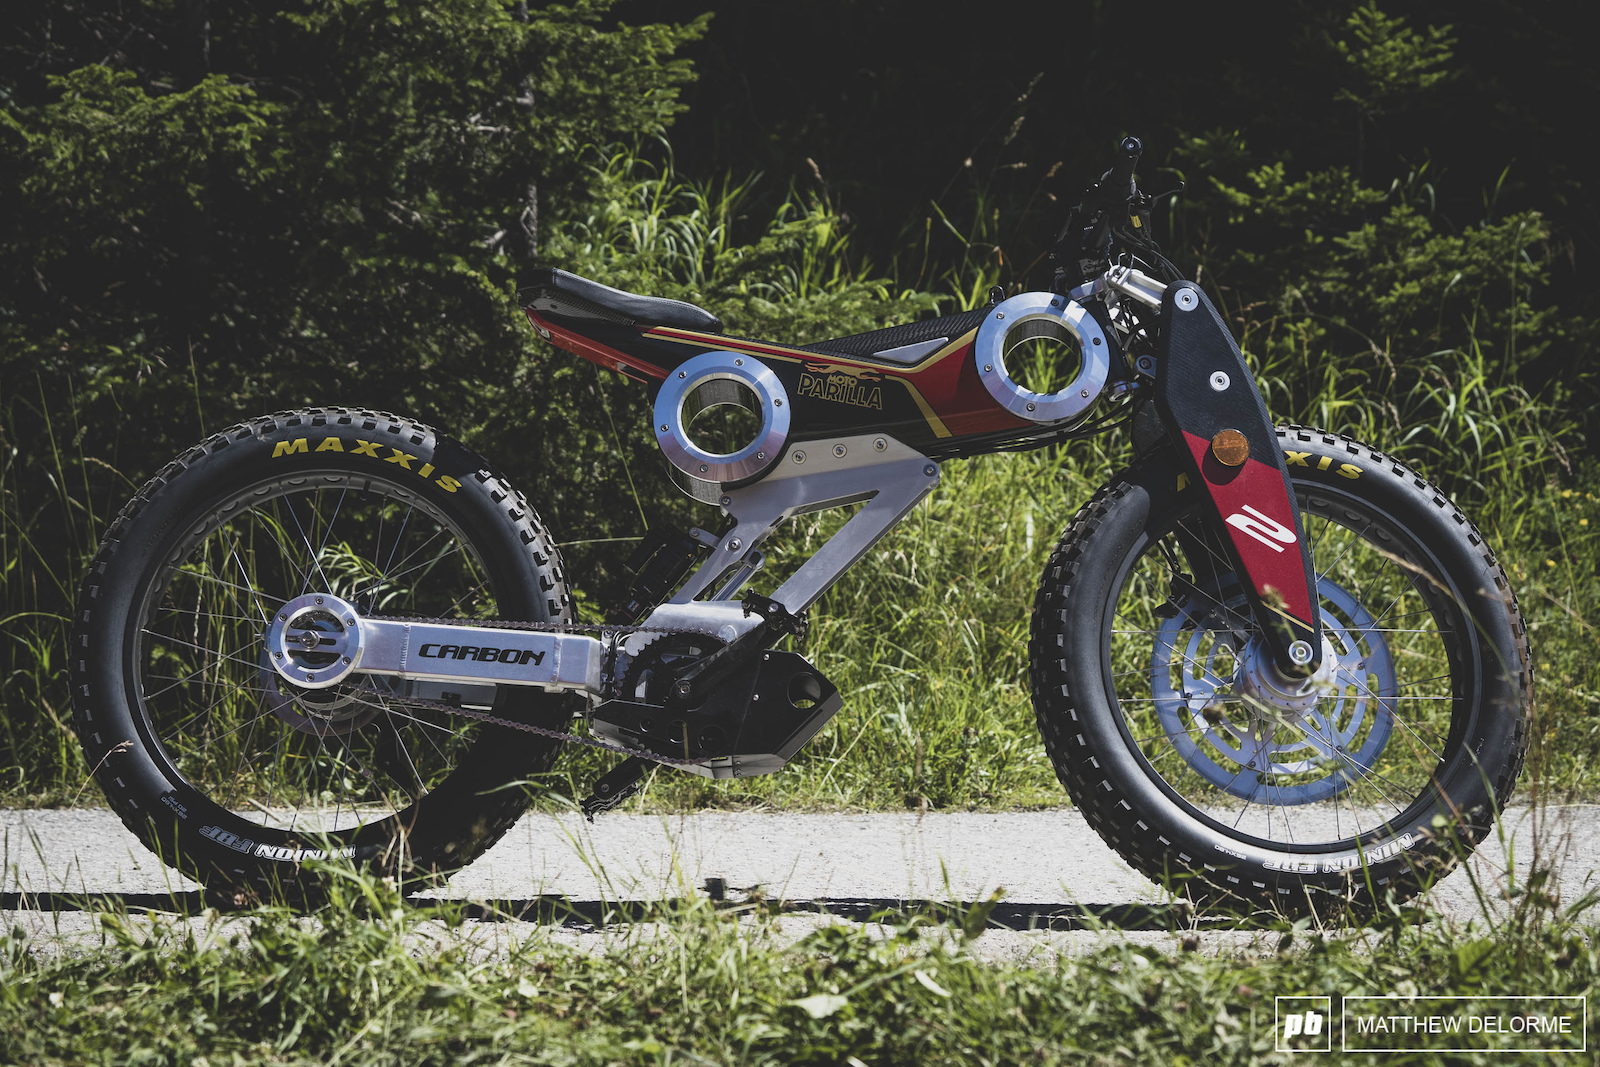 The Moto Parilla ebike. It looks more like a motorcycle and isn t quite off road capable. Still worth looking at its nuttiness.